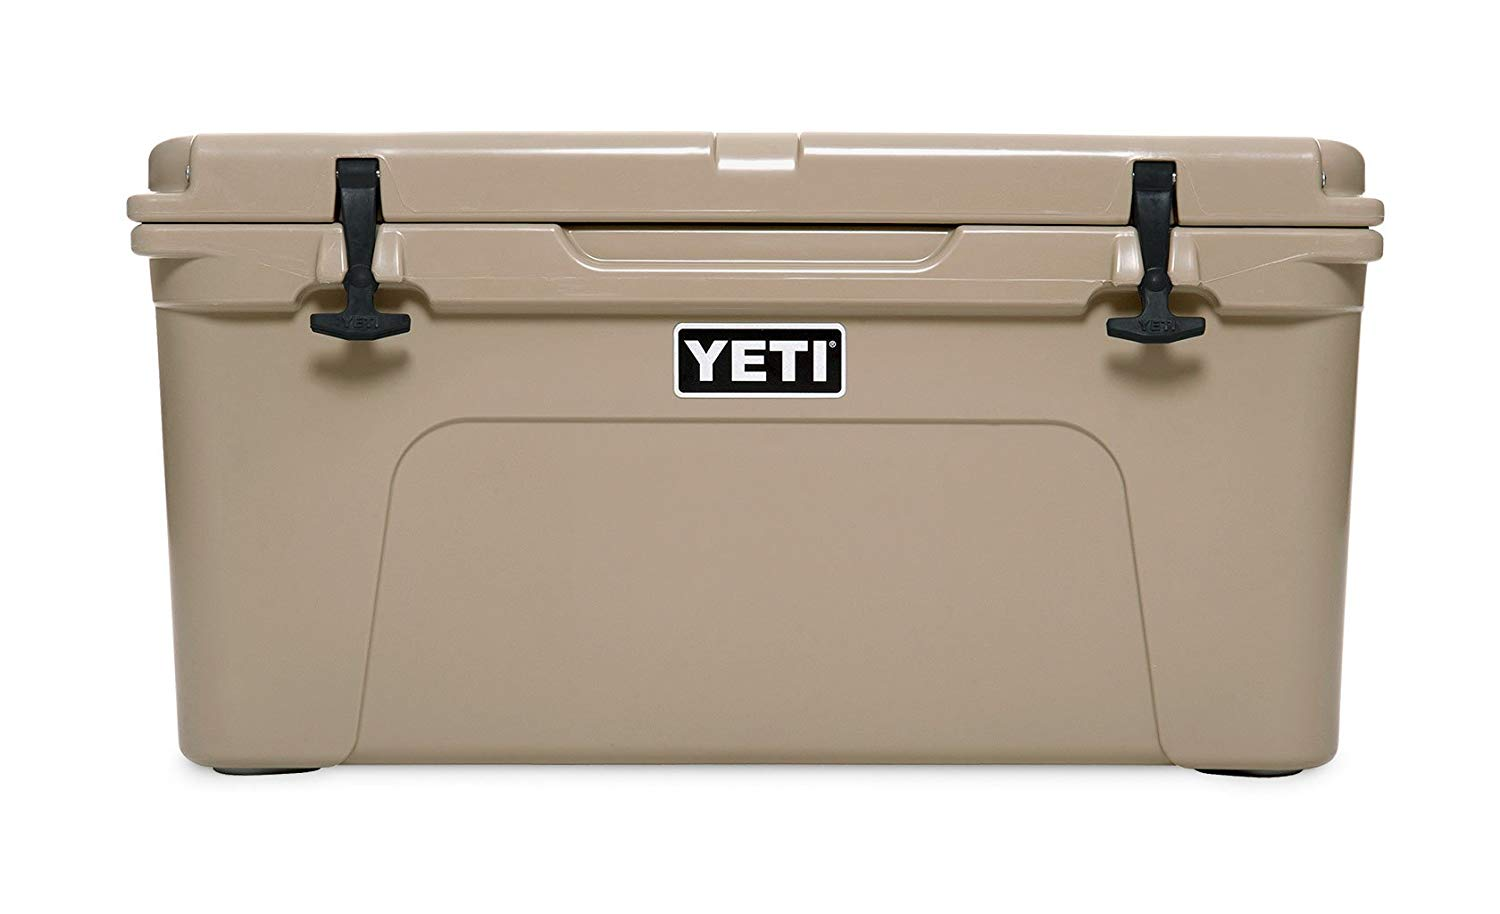 Top 10 Best Yeti Coolers For Hunting & Camping 2021 Reviews 3